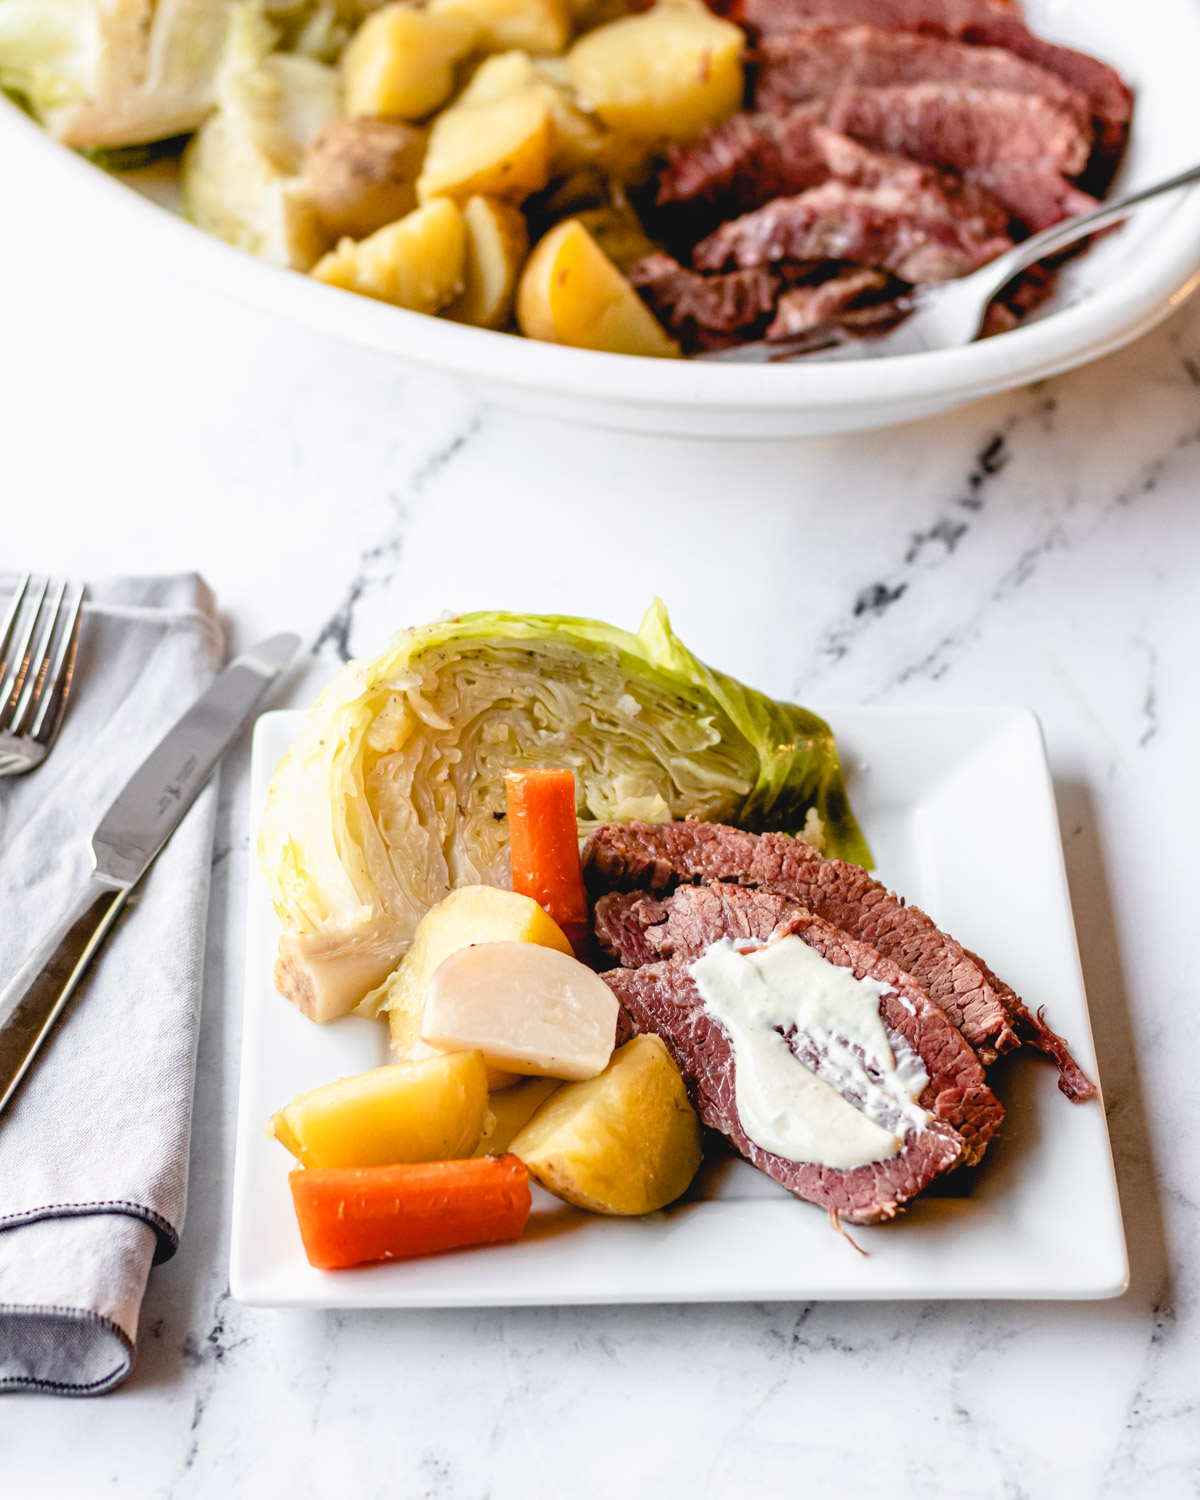 Plate of corned beef topped with mustard cream sauce, with boiled cabbage, potatoes,turnips, and carrots.